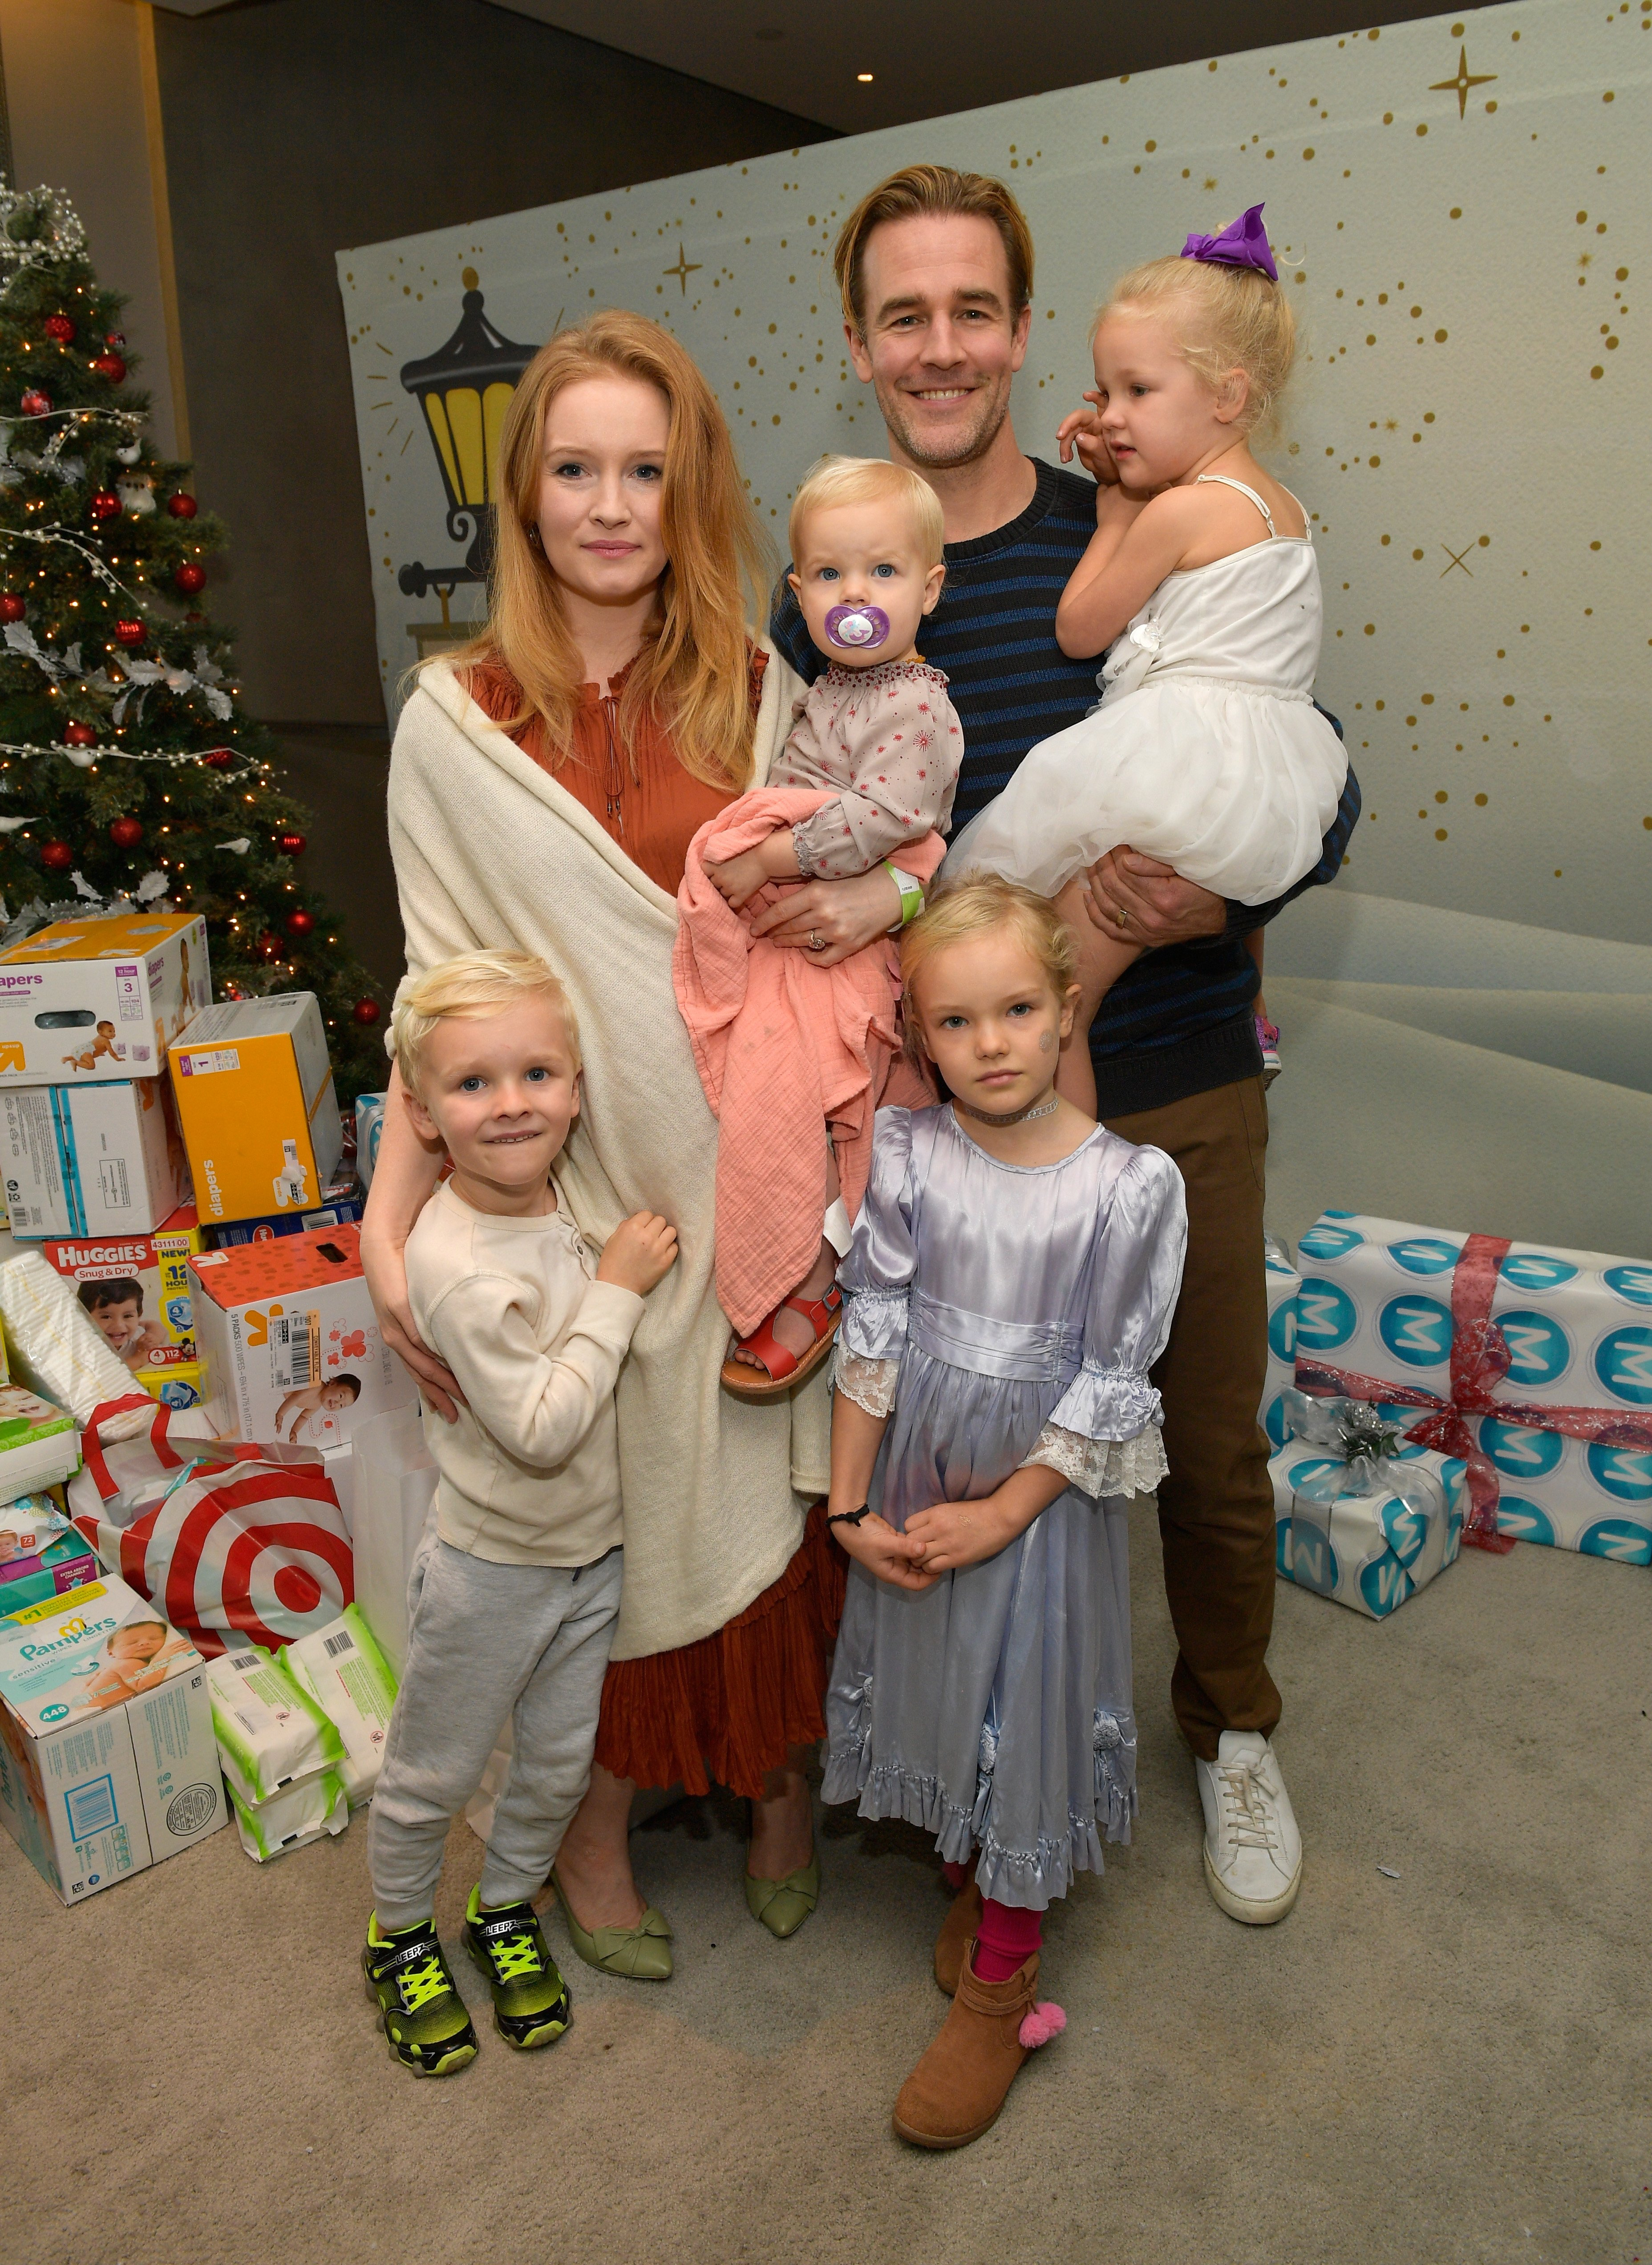 Image Source: Getty Images/ James with his family